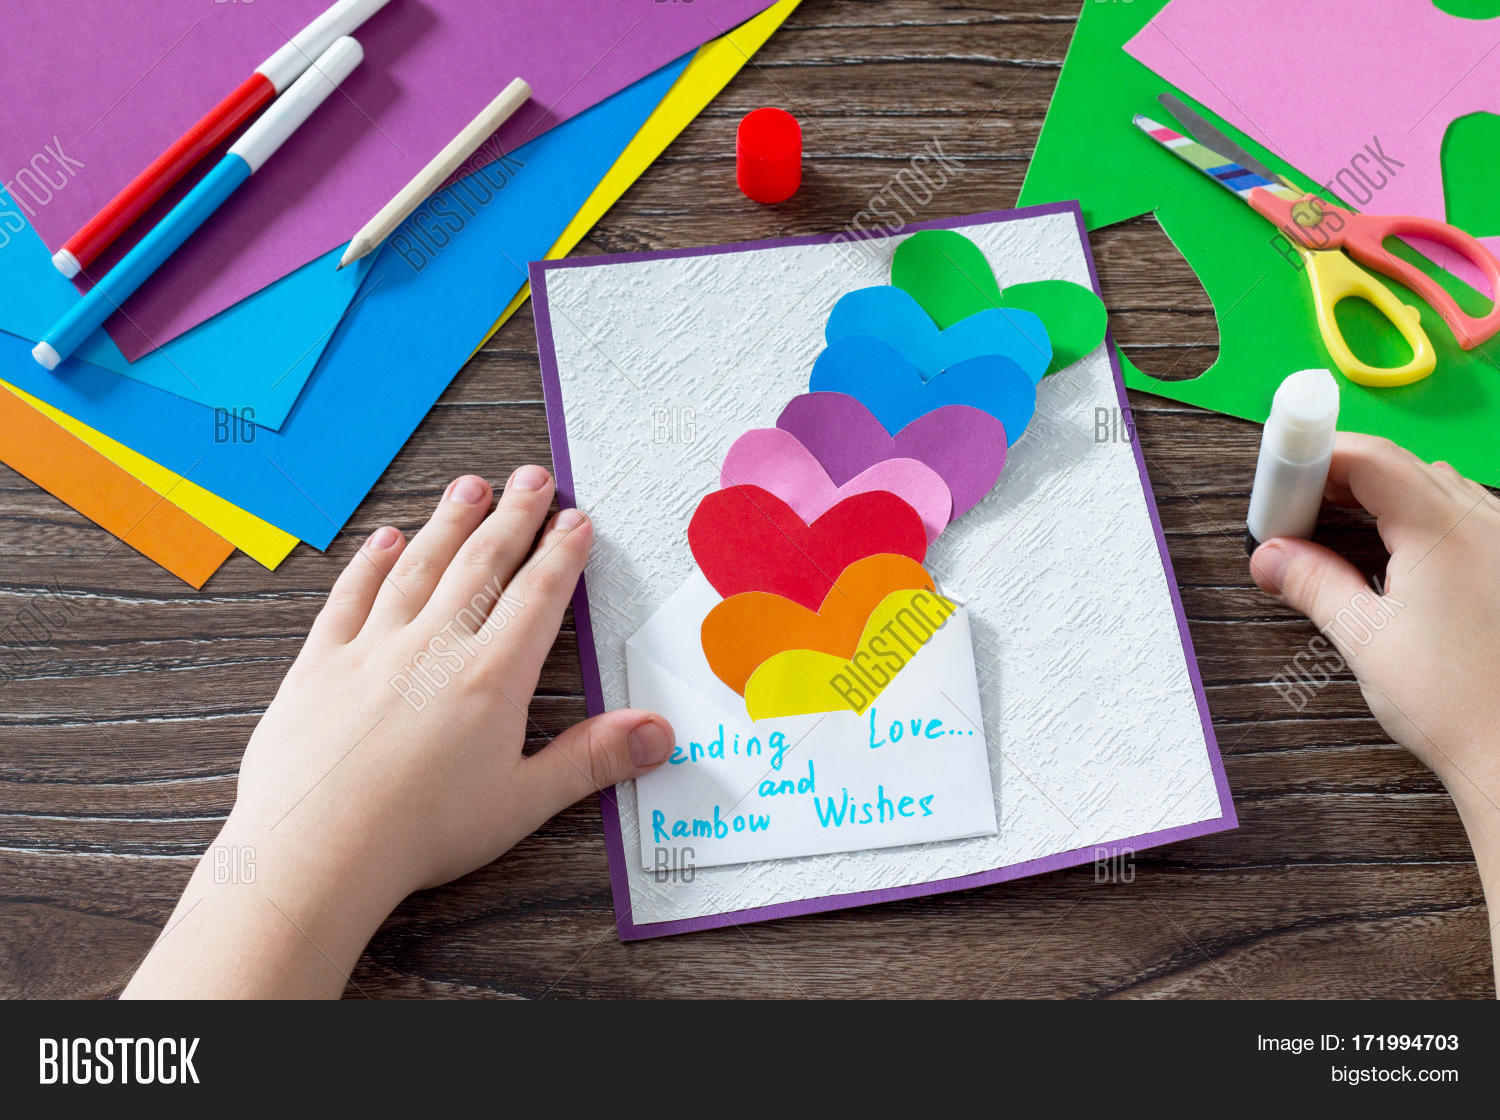 Birthday Mother S Day Image Photo Free Trial Bigstock